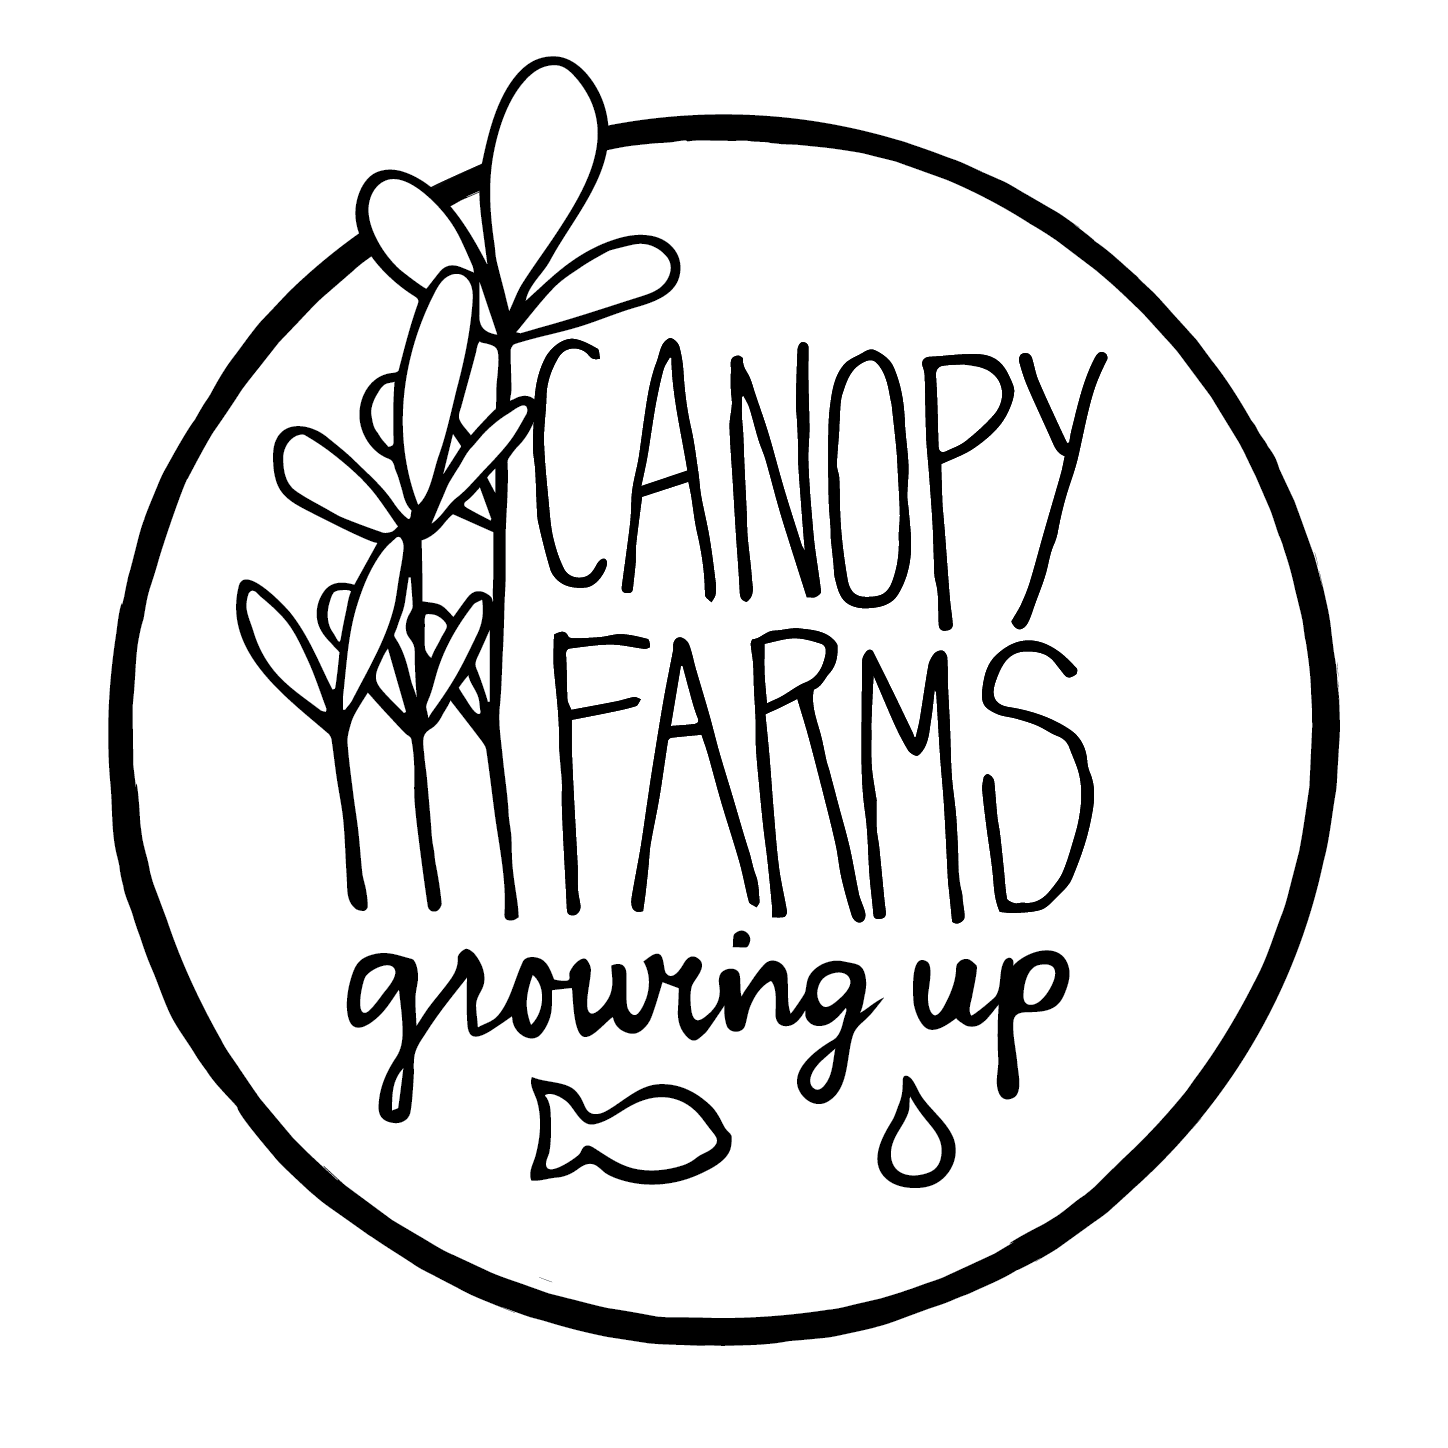 Canopy Farms